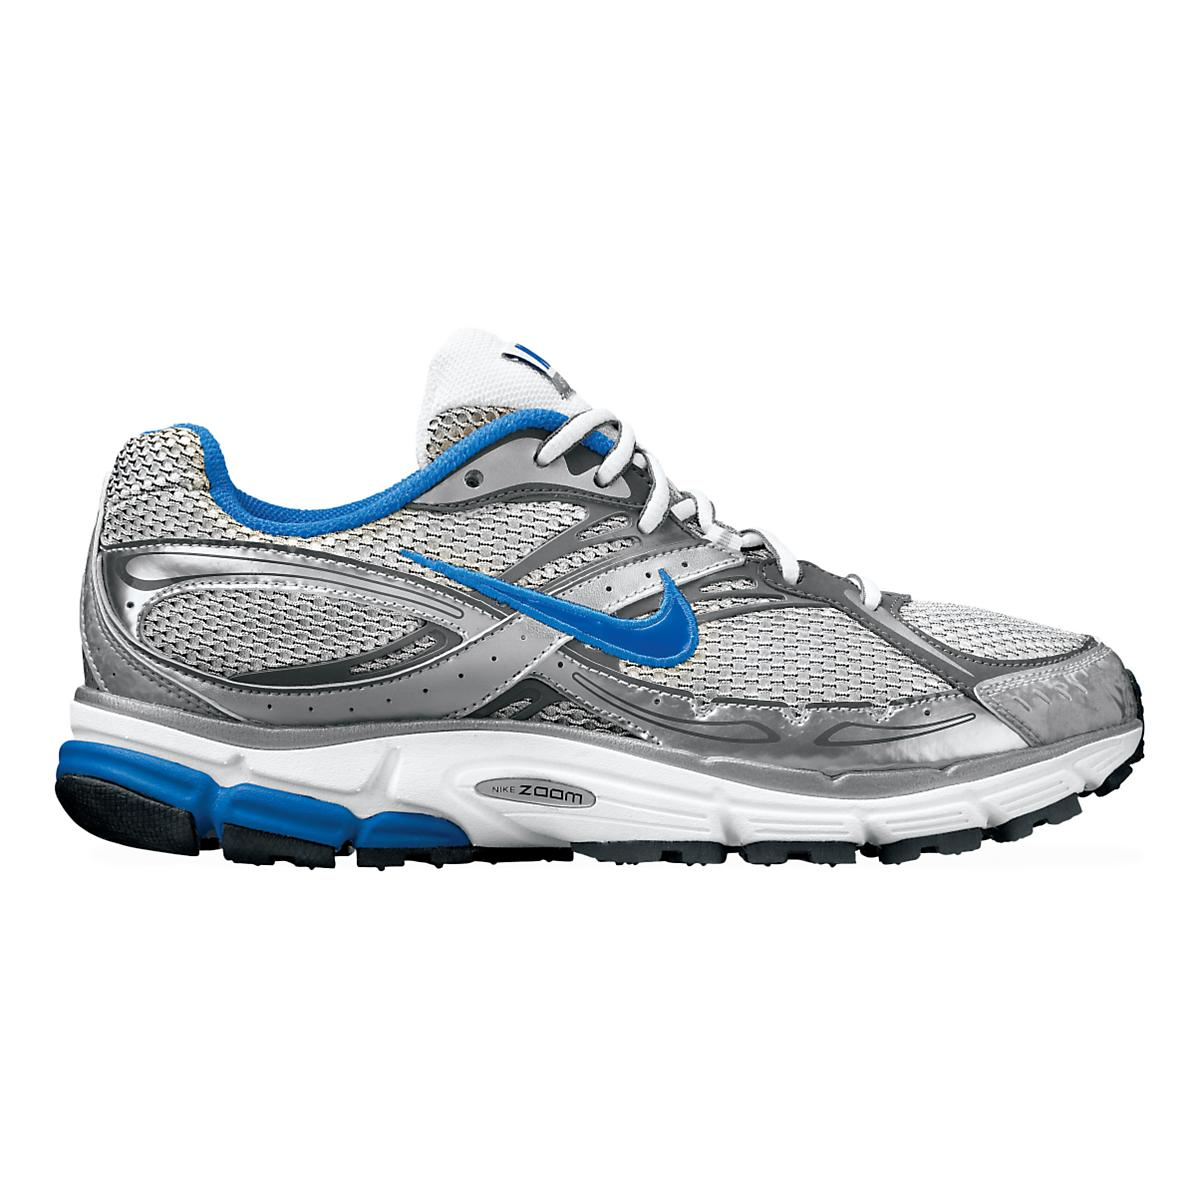 bdd922854e03 Womens Nike Zoom Structure Triax+ 12 Running Shoe at Road Runner Sports